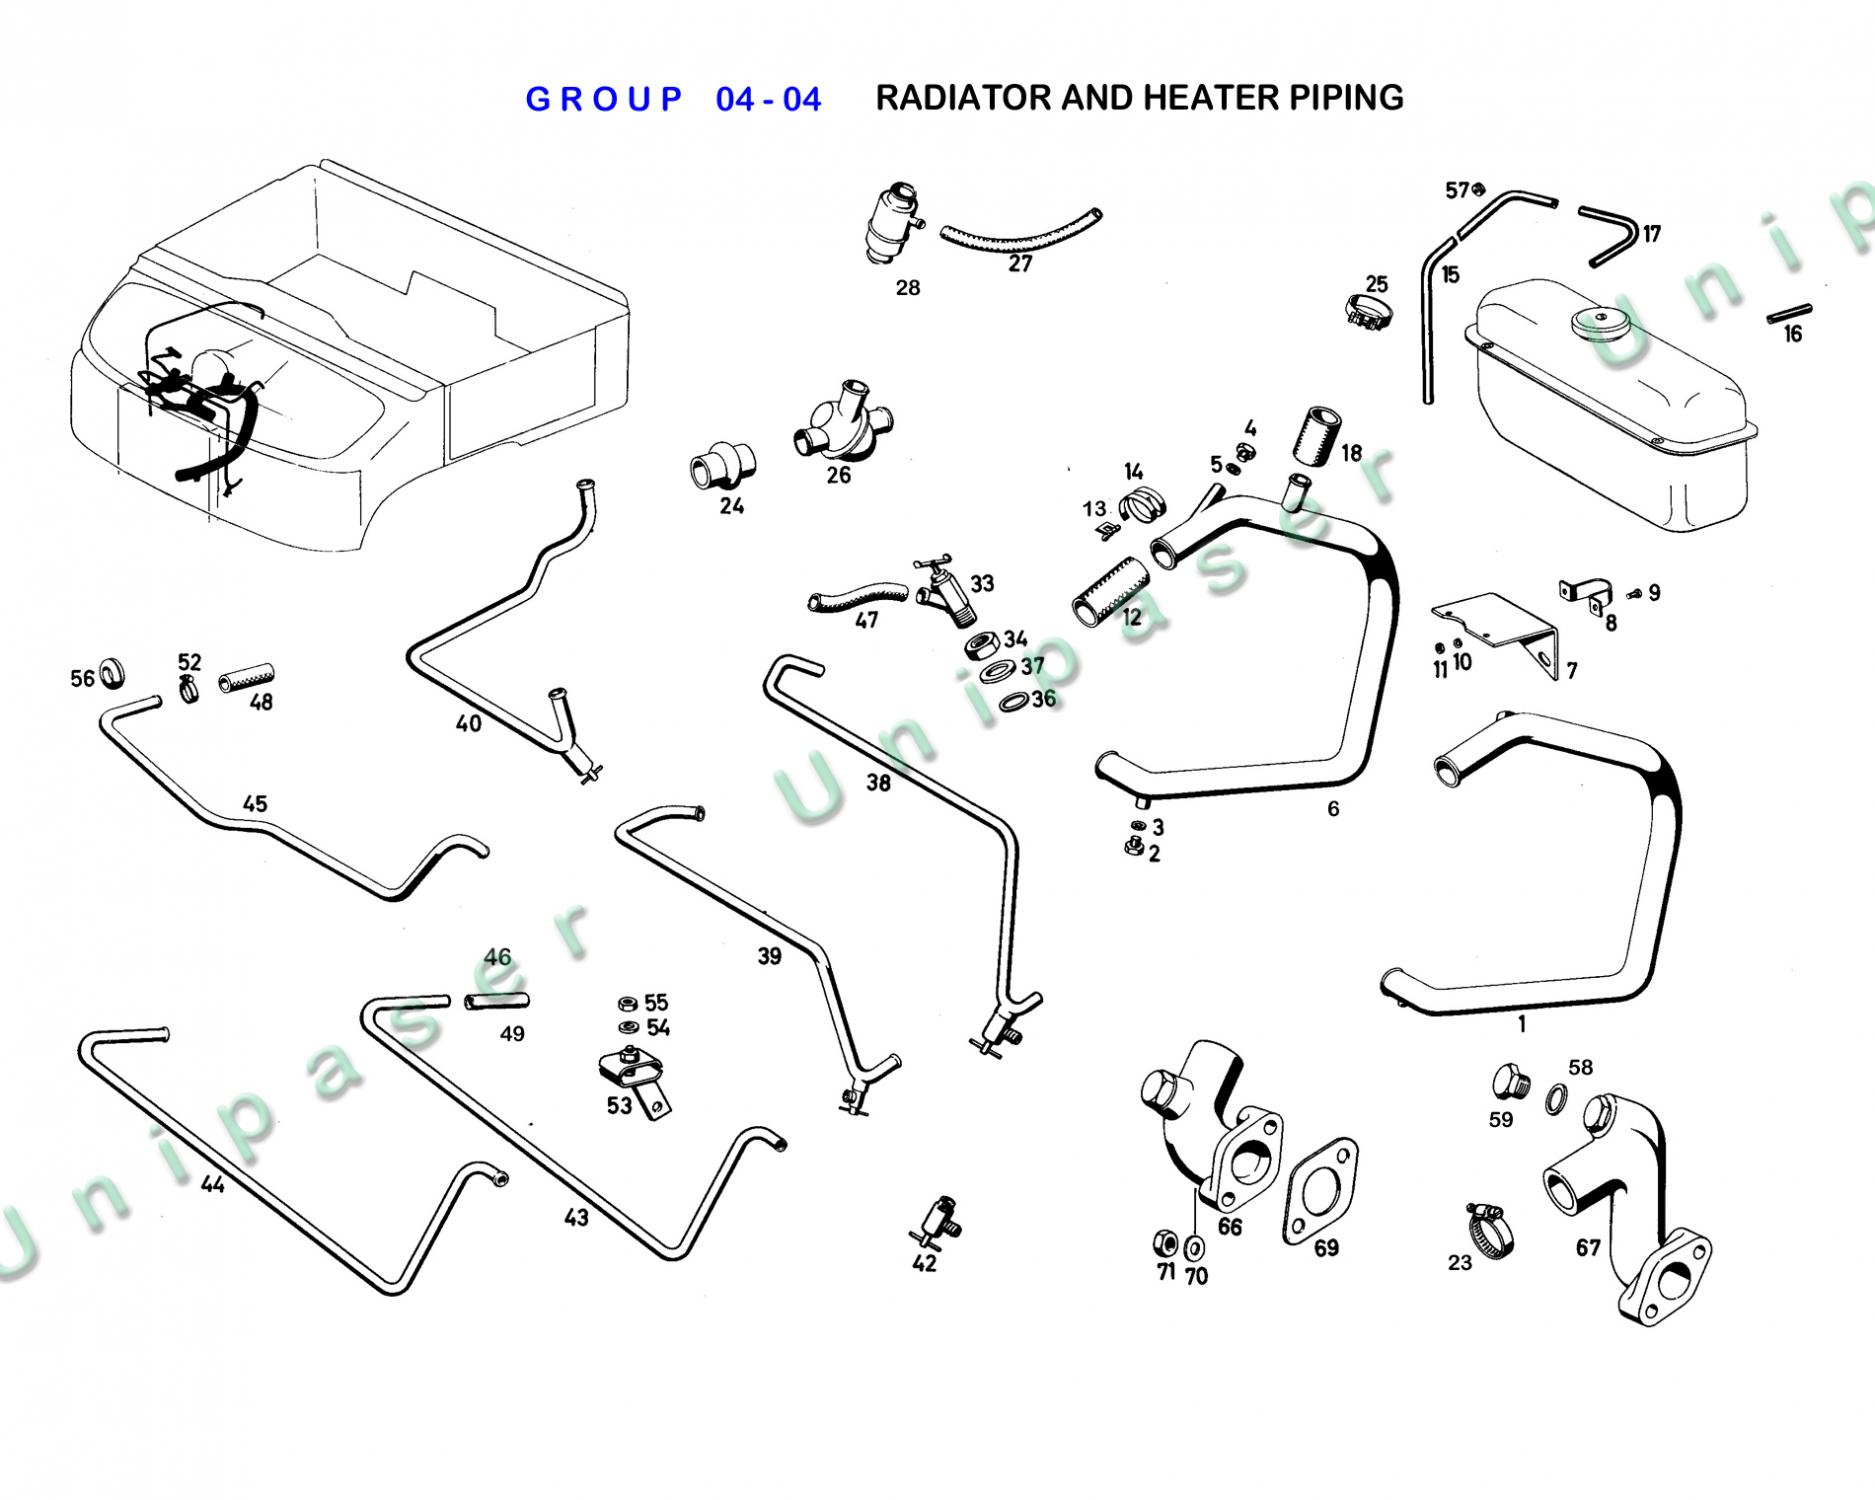 04 04 Radiator And Heater Piping